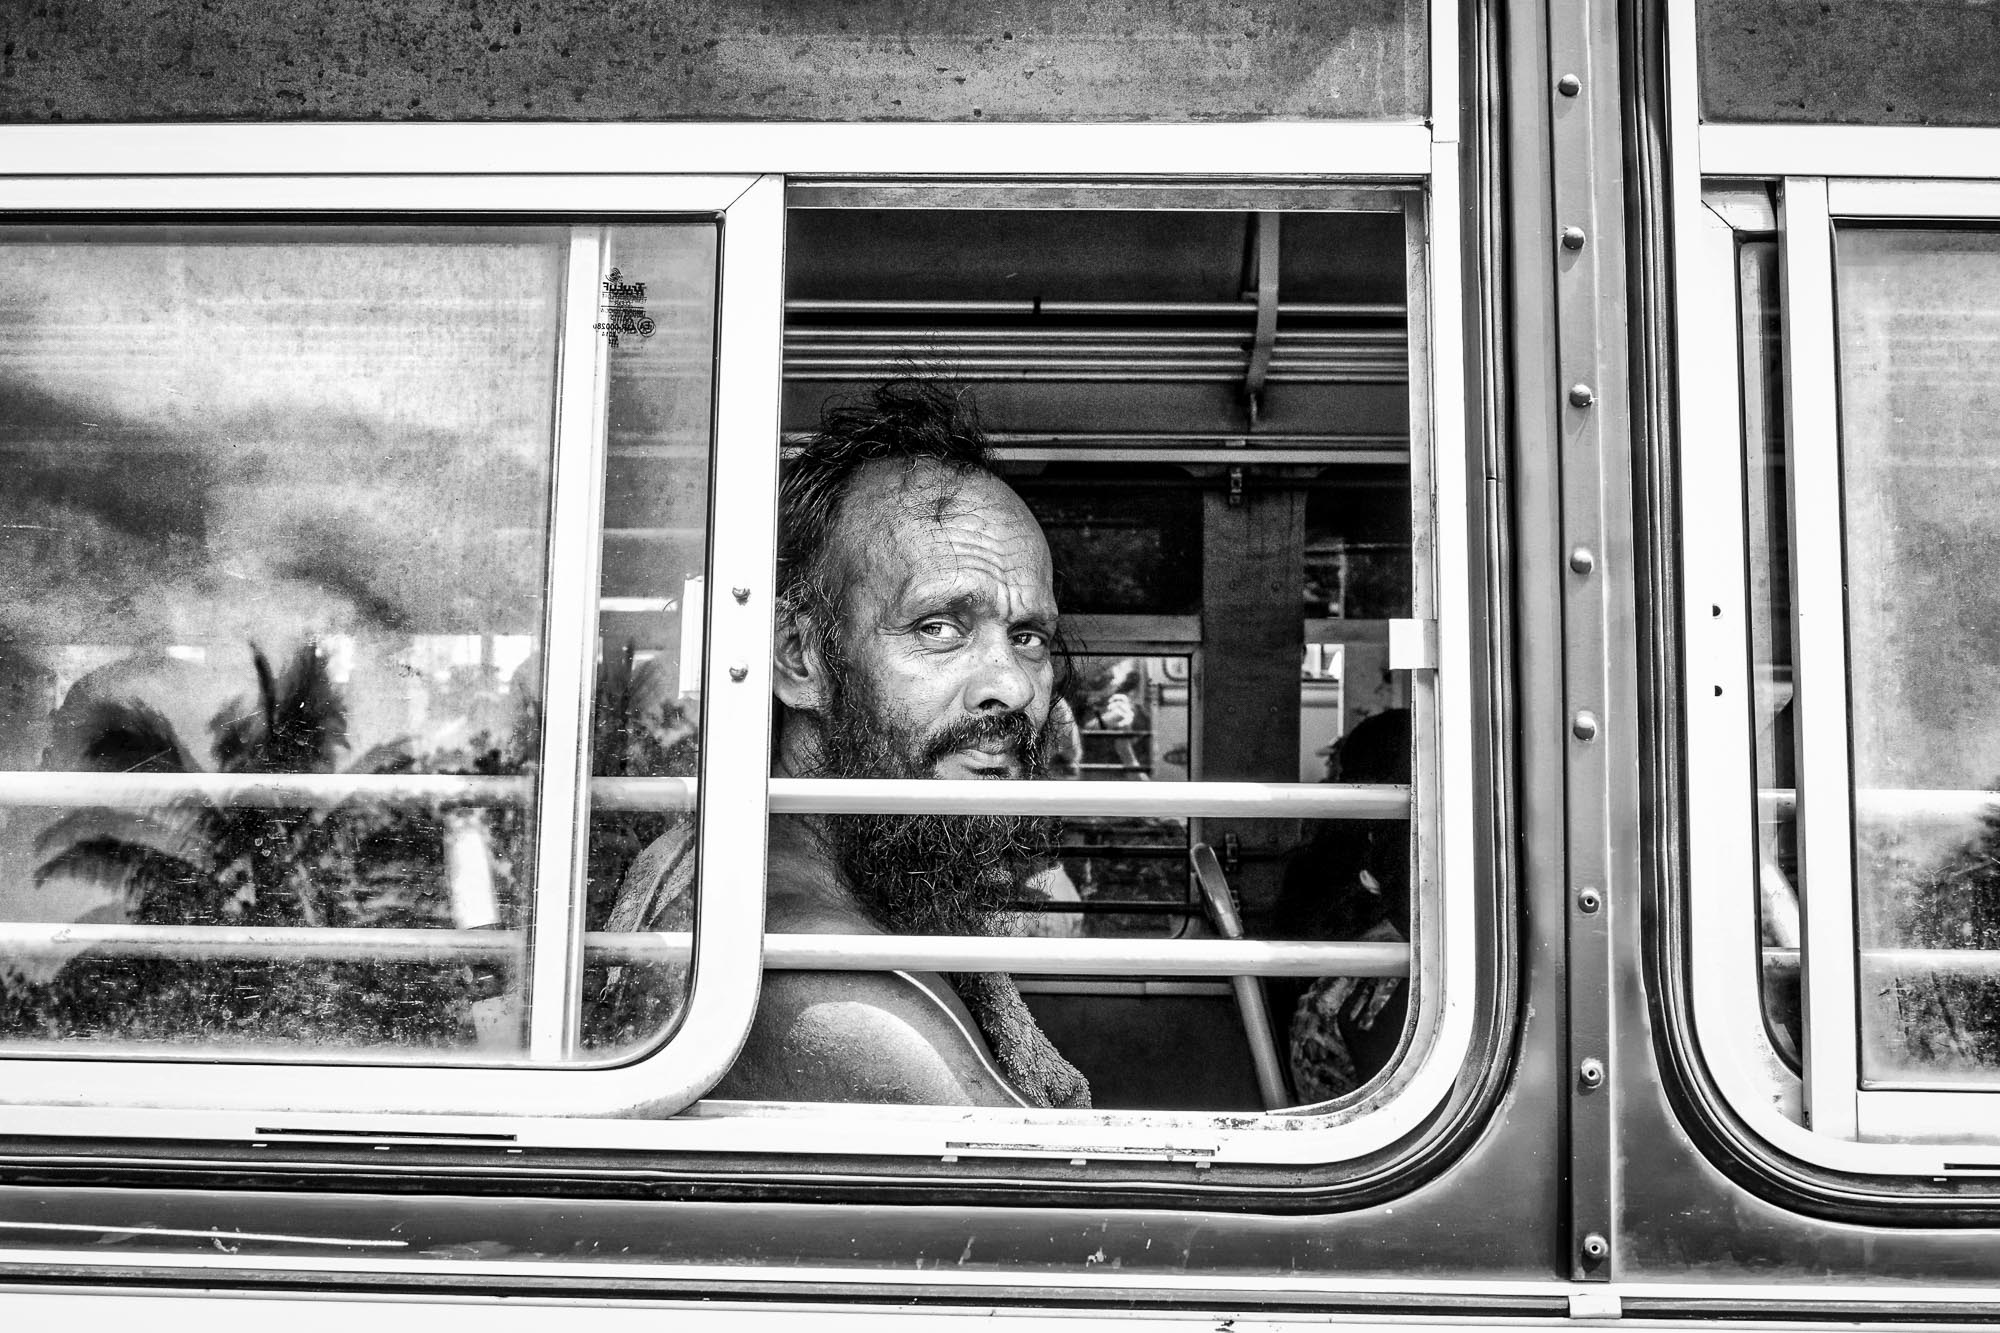 Vadda sri lanka indingenous group people photography - veddas in the bus